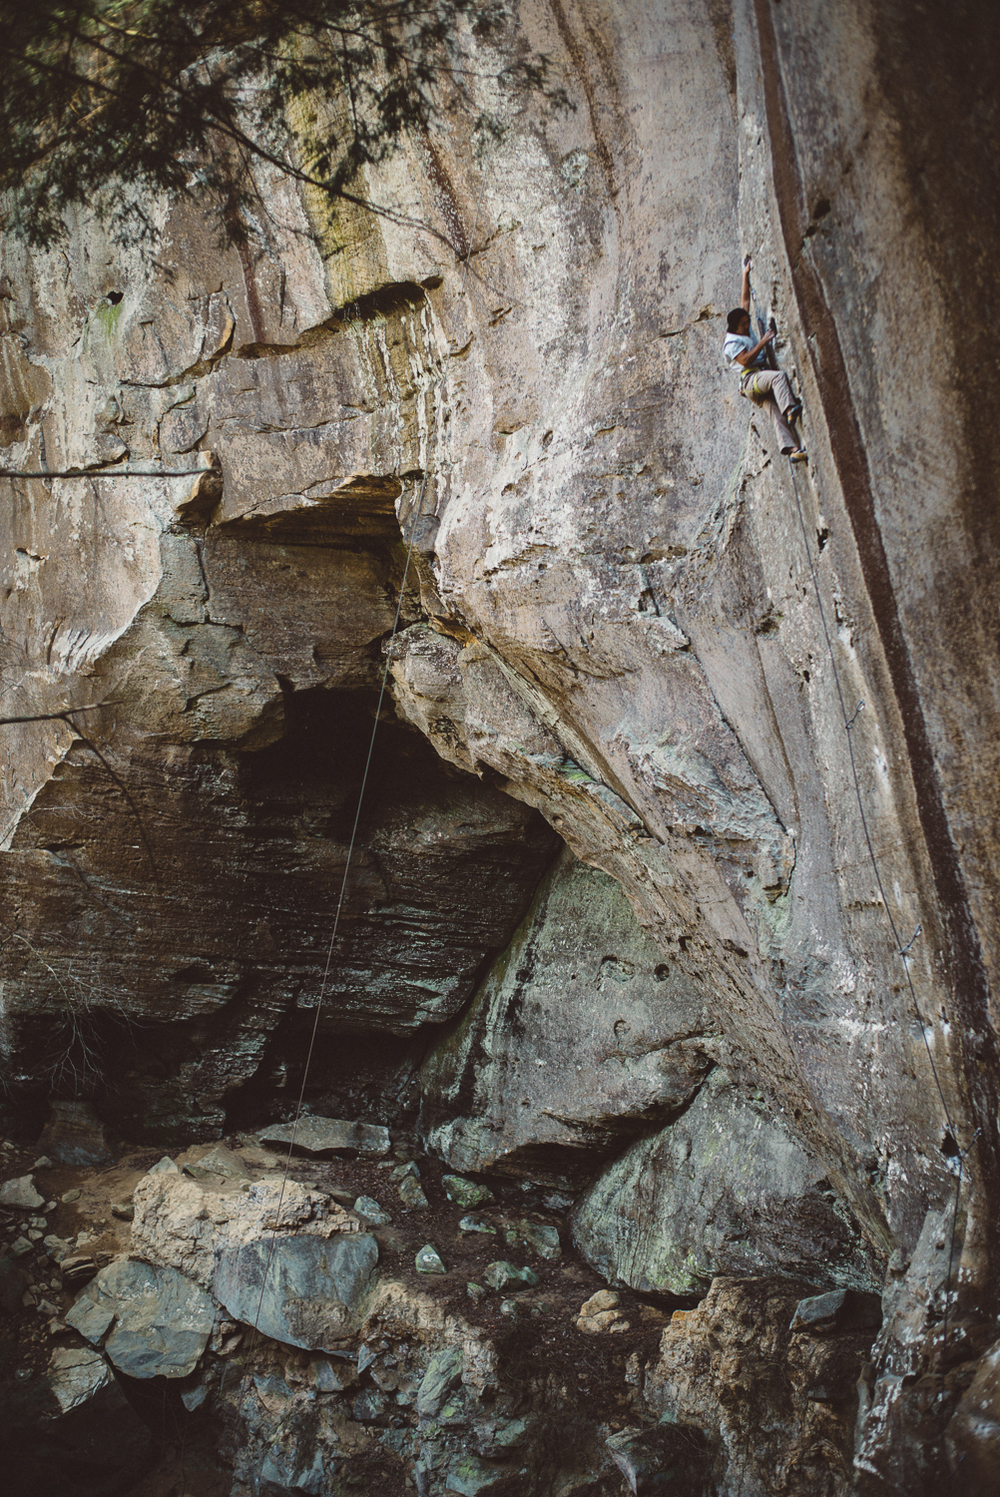 Ben Lim climbing Amarillo Sunset (5.11b), Red River Gorge.